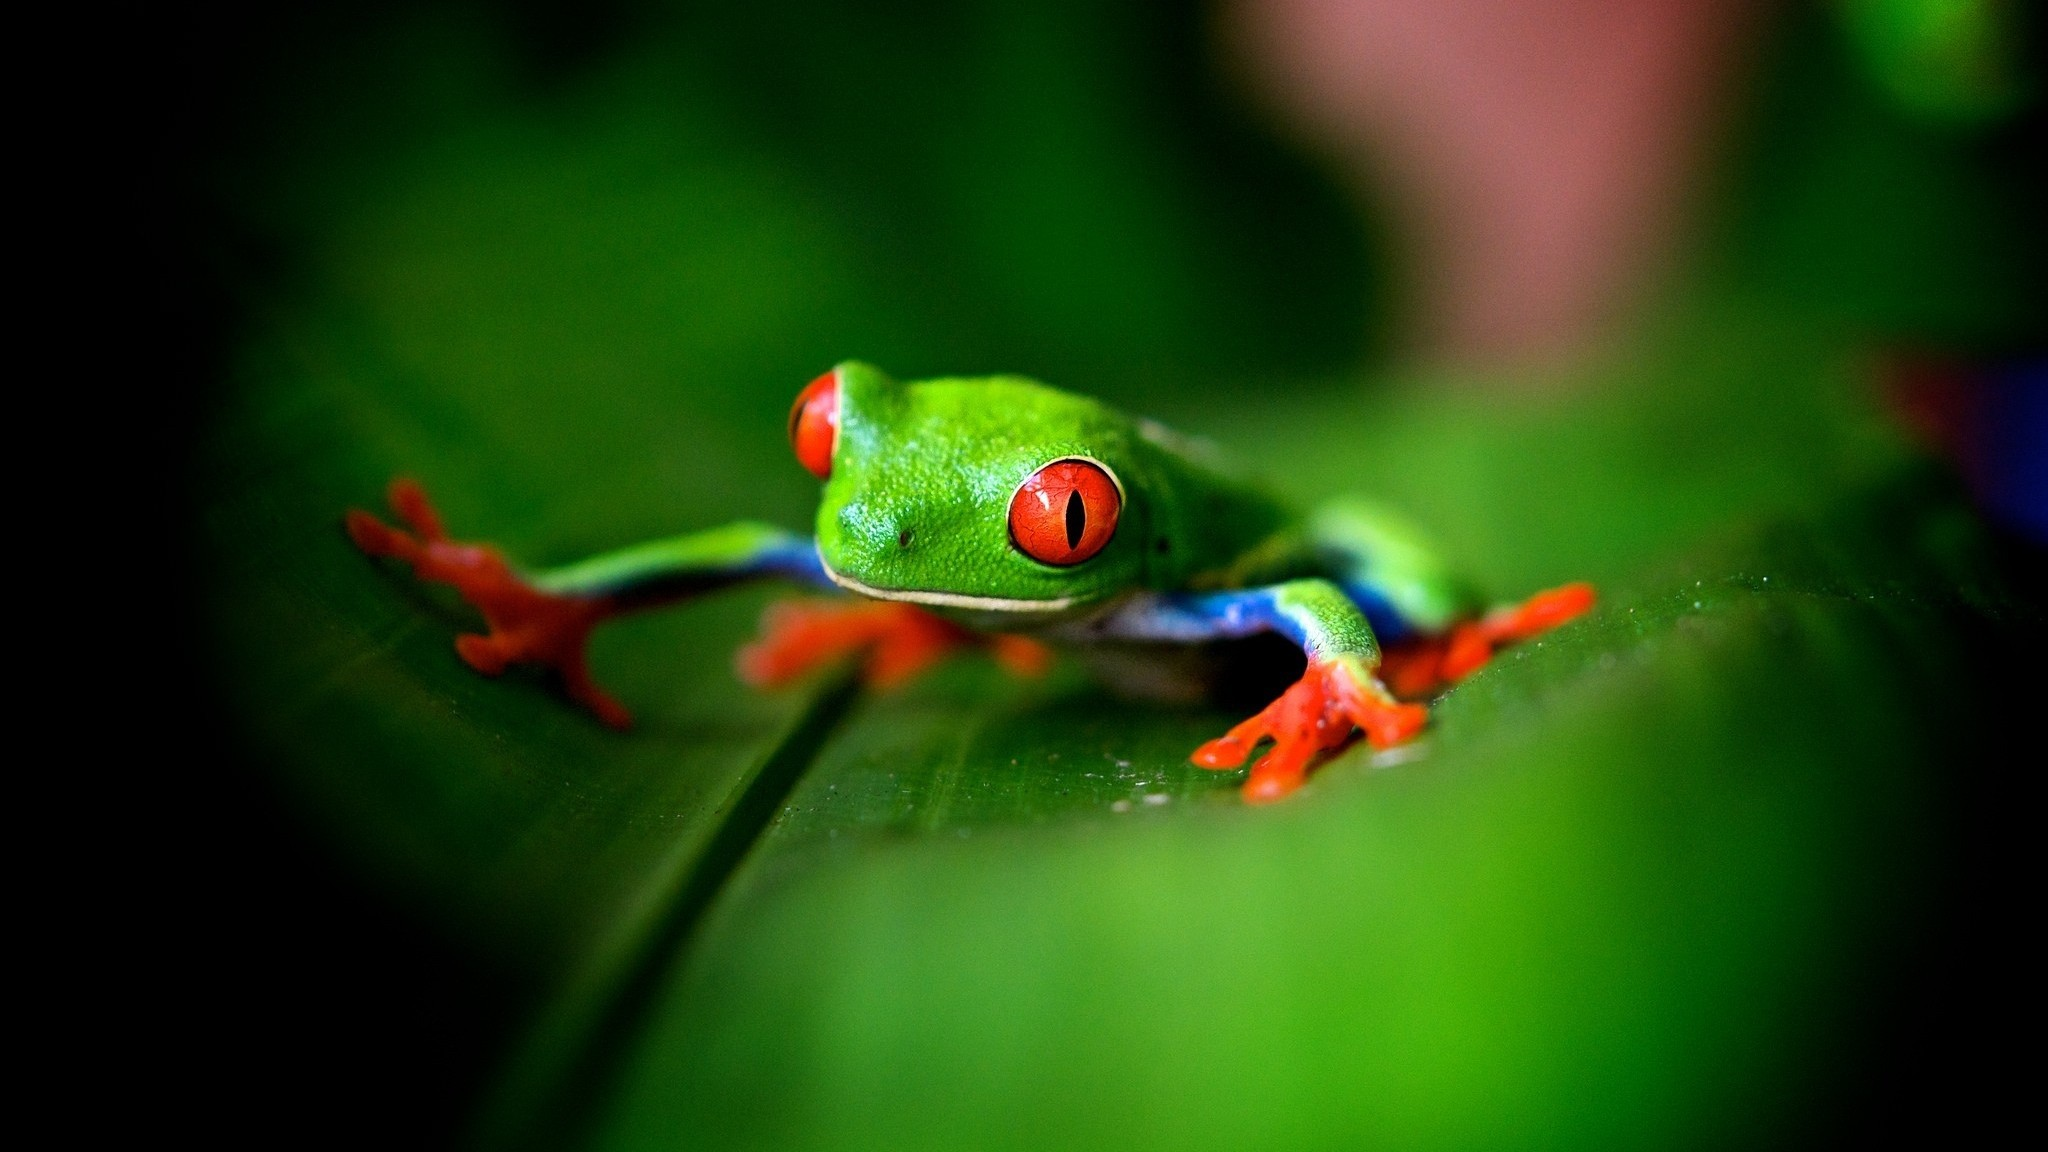 Cute Frog Wallpaper High Quality Resolution …